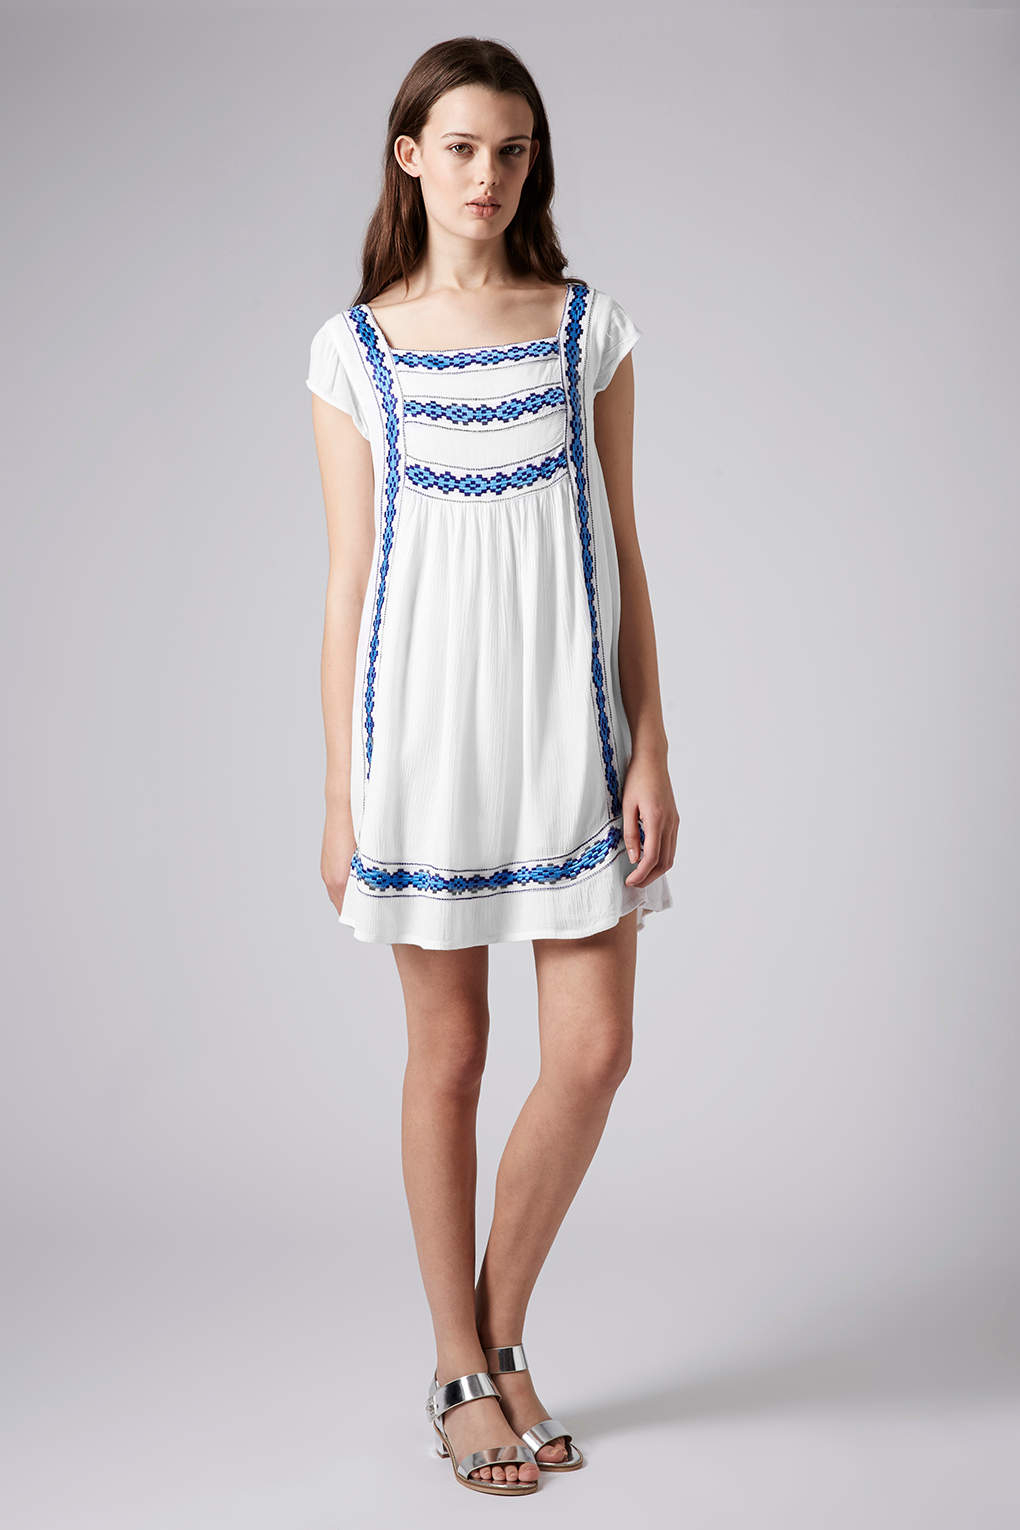 Topshop Womens Crinkle Embroidered Smock Dress White In